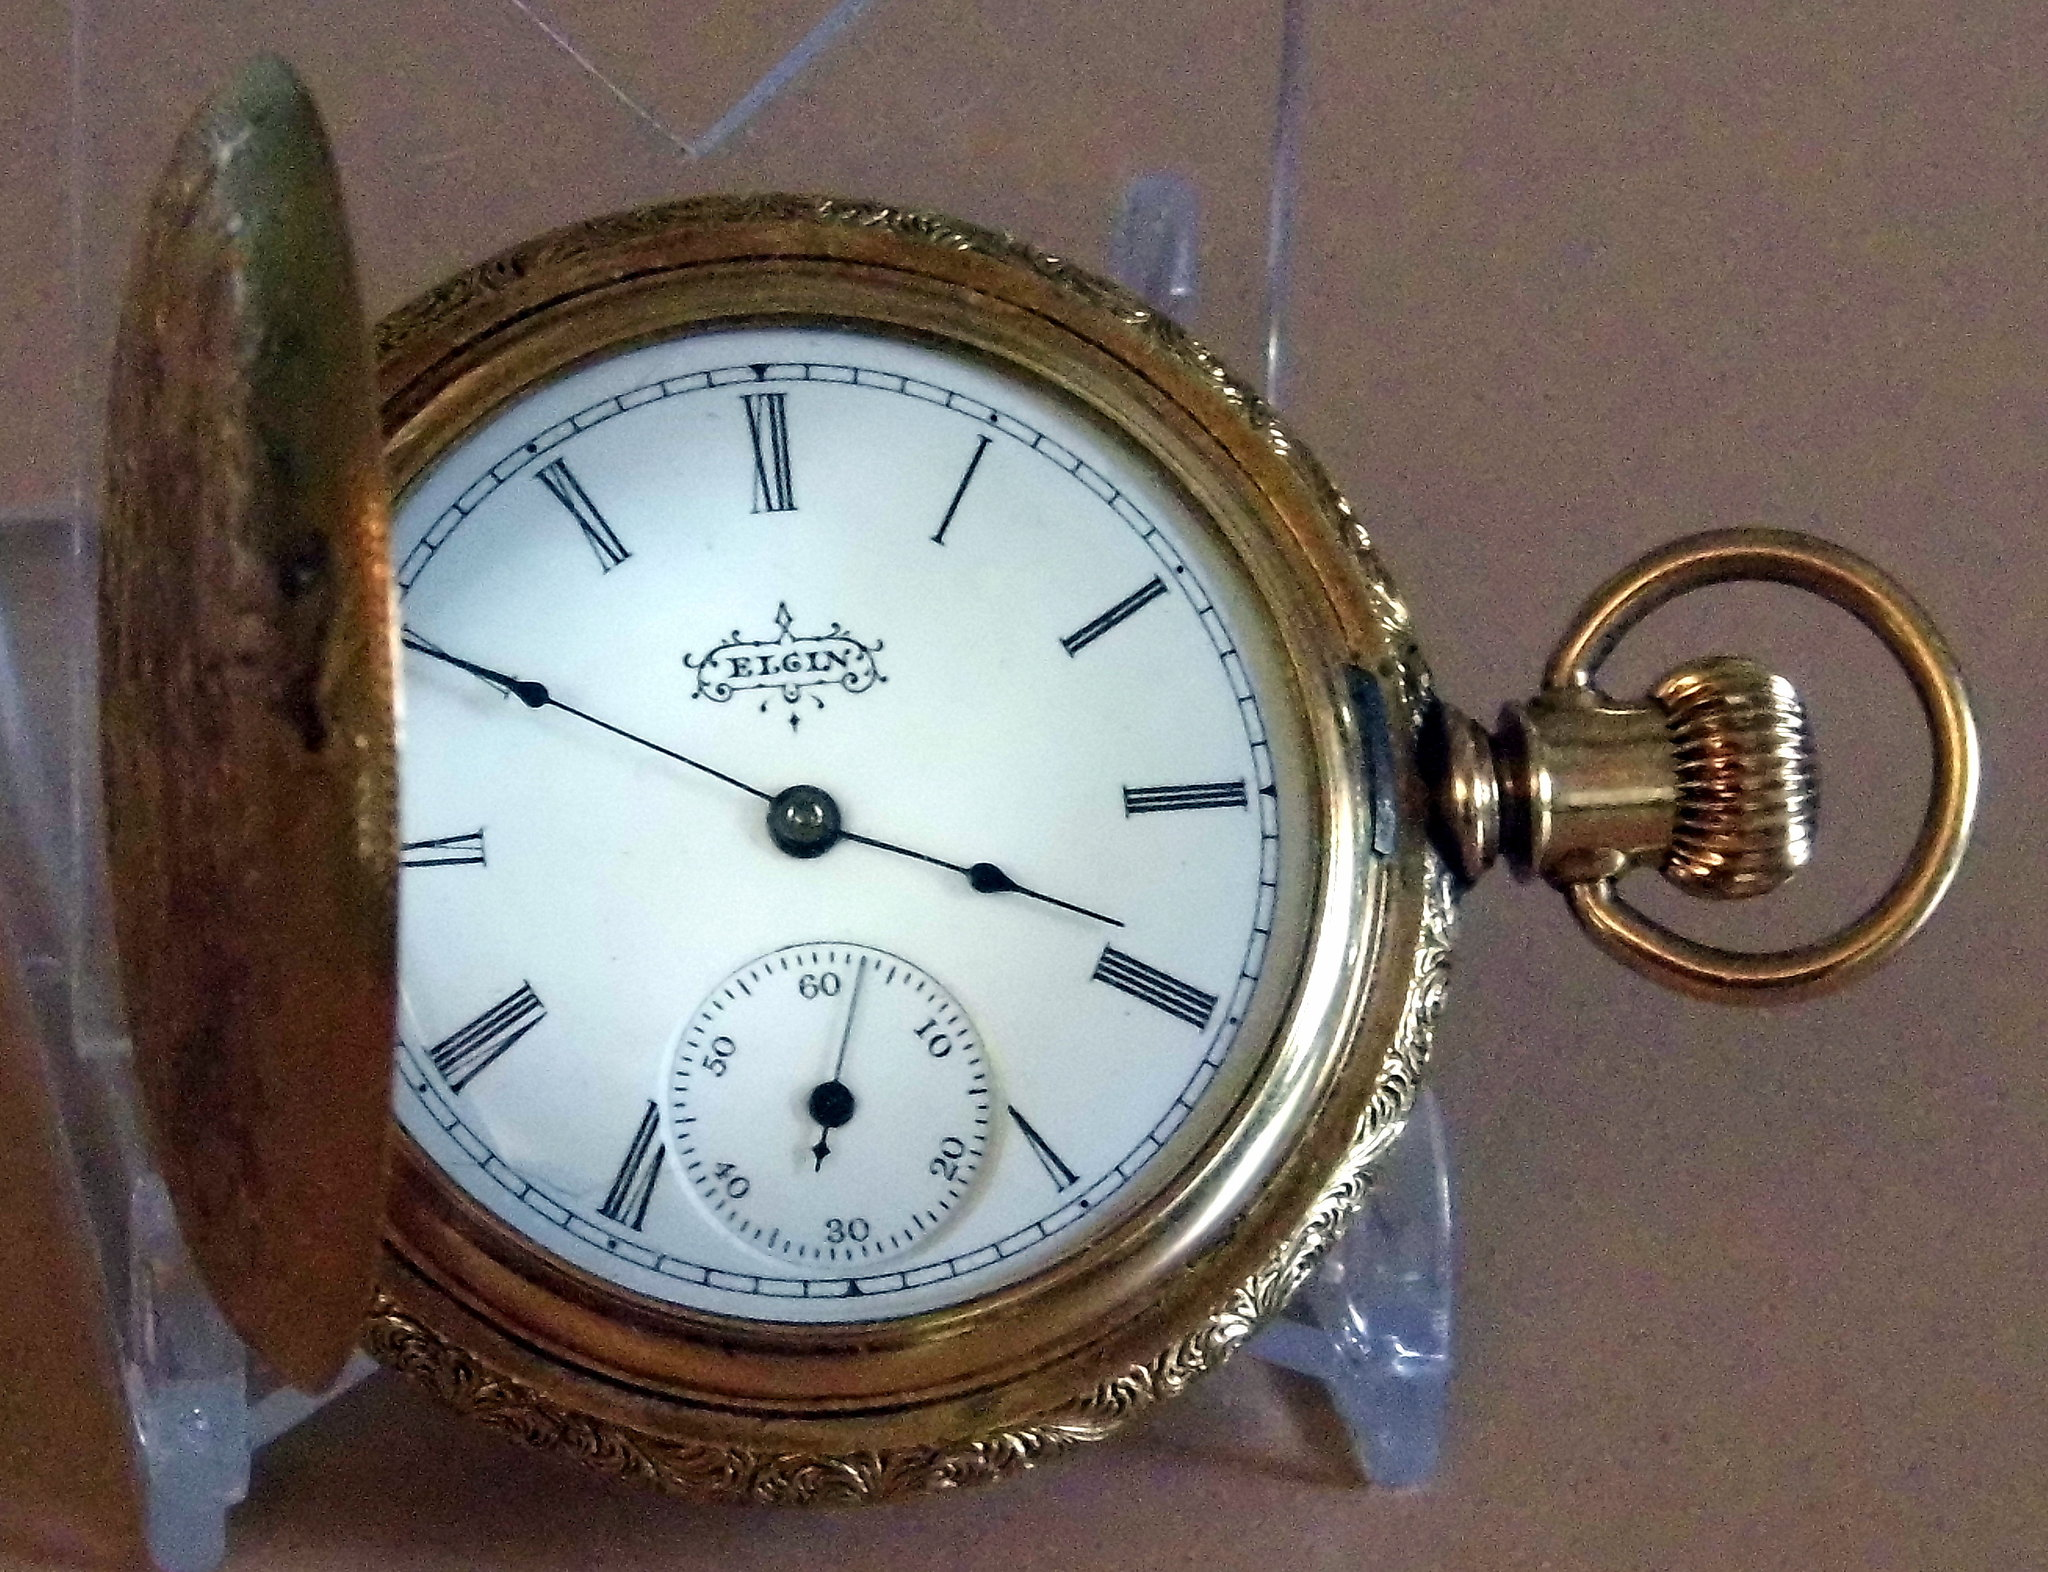 Why Vintage Collectors Love Elgin Watches